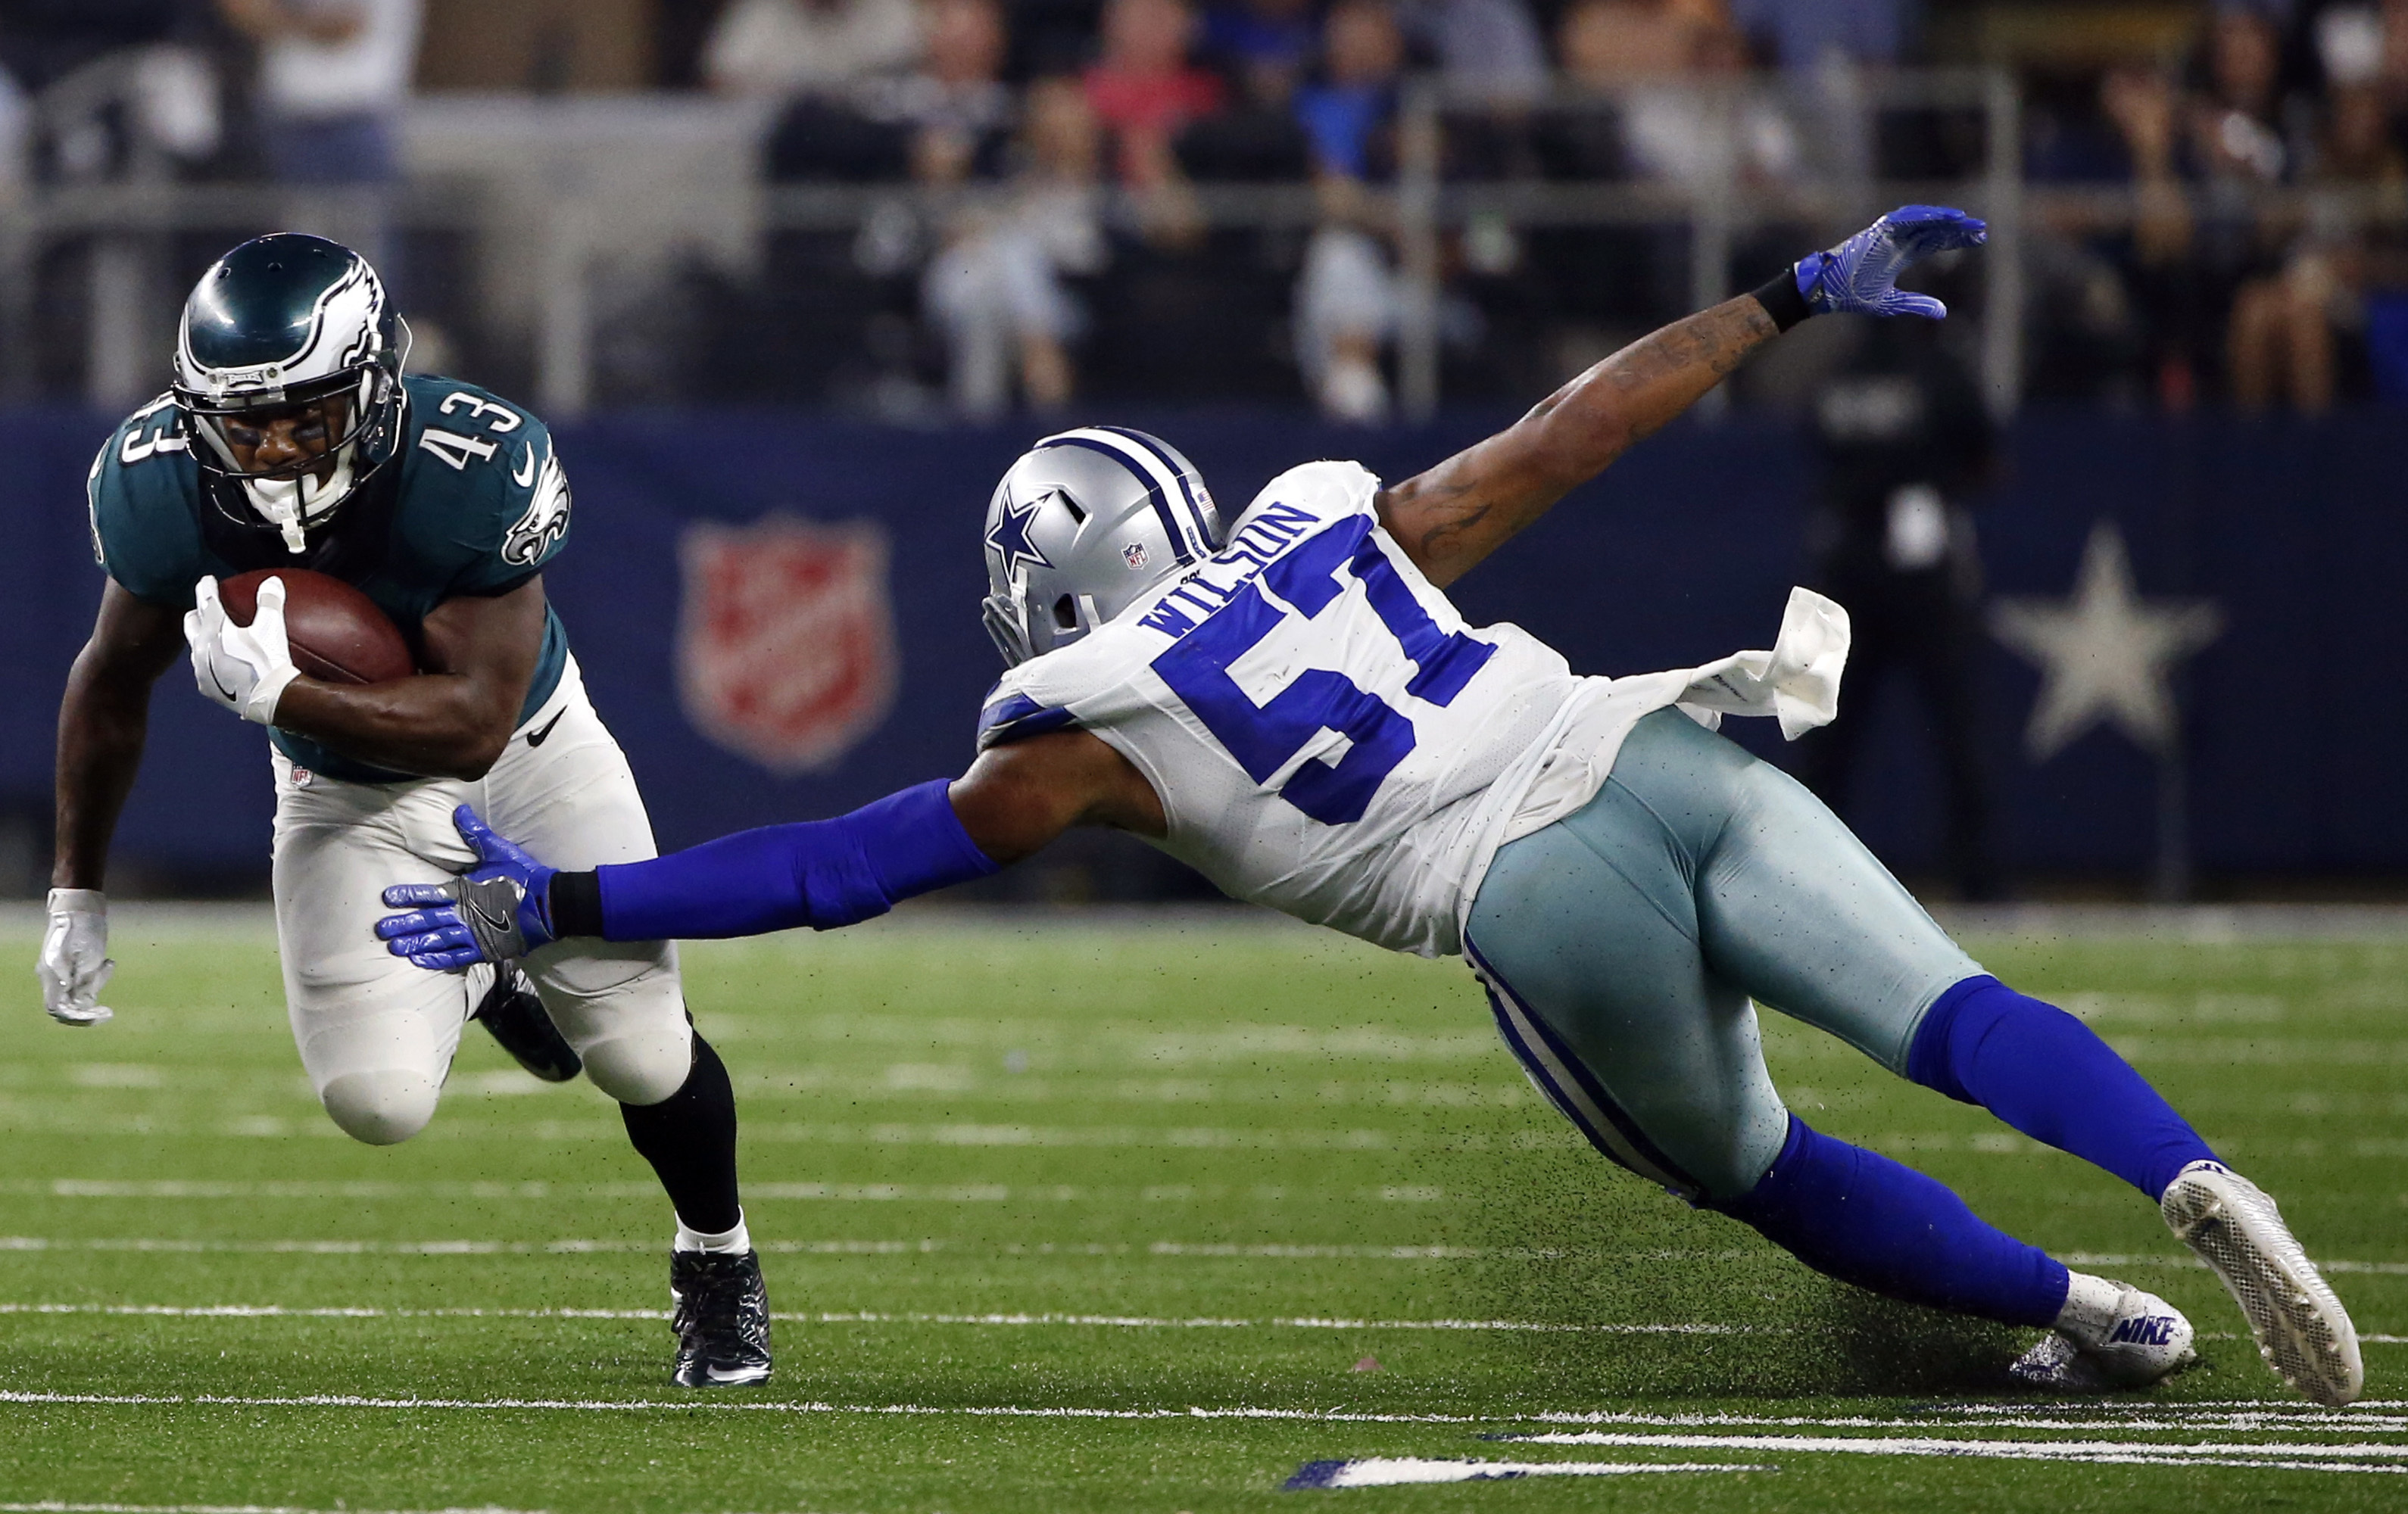 FILE - In this Oct. 30, 2016, file photo, Philadelphia Eagles' Darren Sproles (43) evades pressure from Dallas Cowboys' Damien Wilson (57) as he carries the ball for a long run during an NFL football game in Arlington, Texas. Sproles led the Eagles with 8